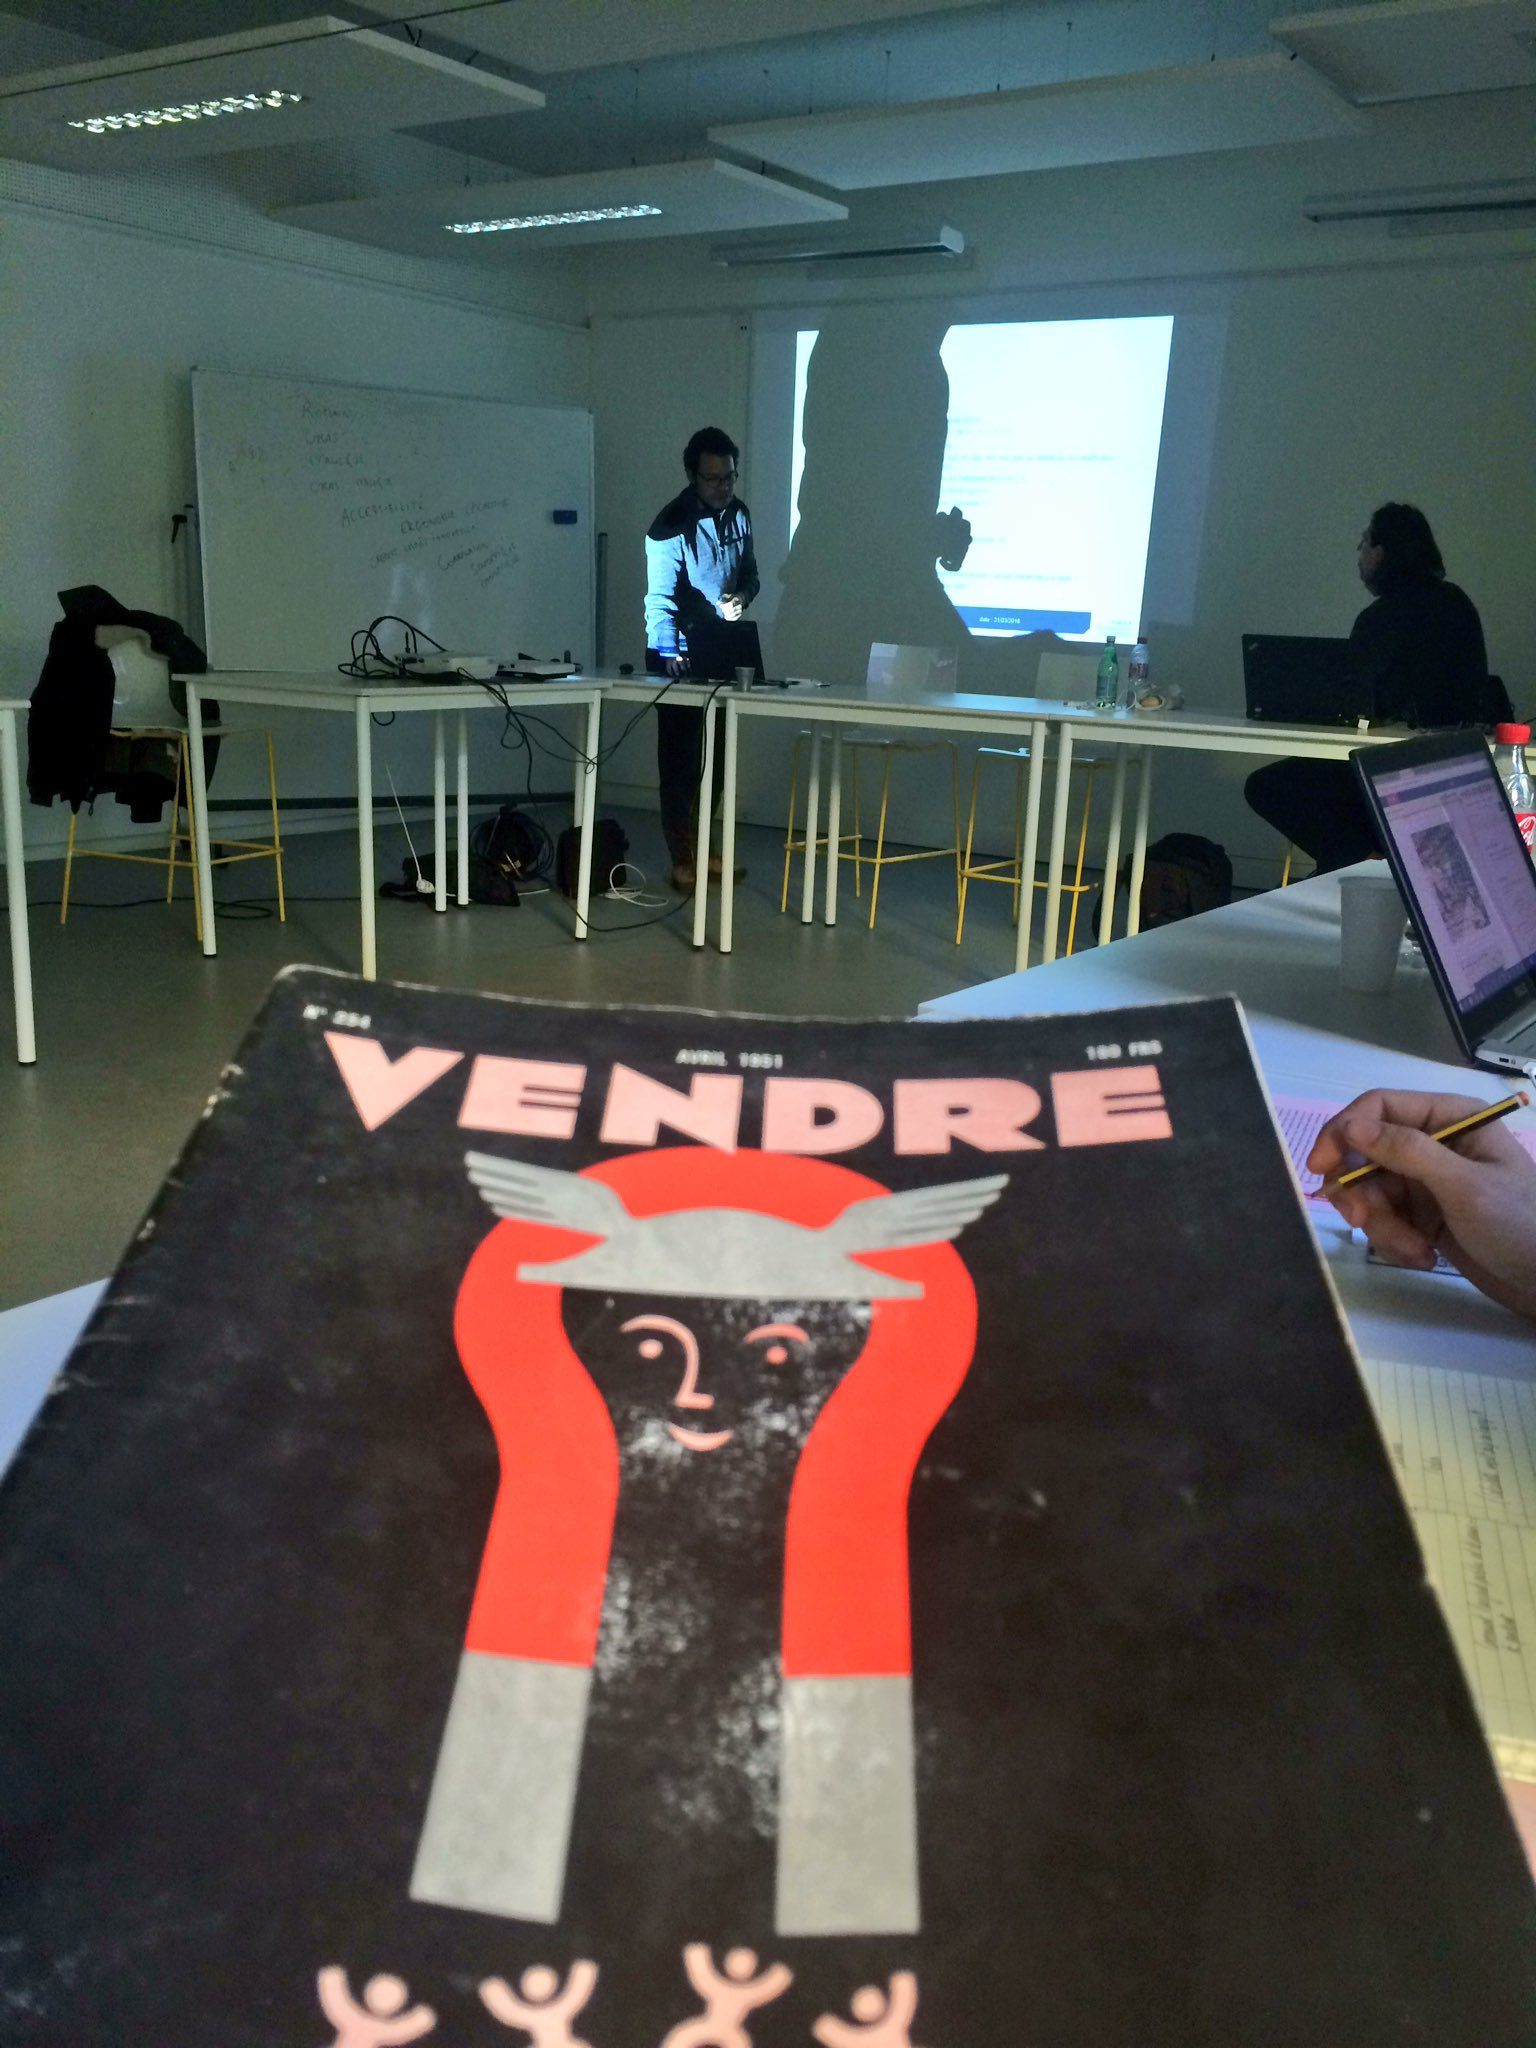 Frank Adebiaye, comptable typographe // Workshop Interculturalité @UTJeanJaures #masterDTCT #DesignJustice #WorkshopInterculturalité https://t.co/MinzFqiIfX